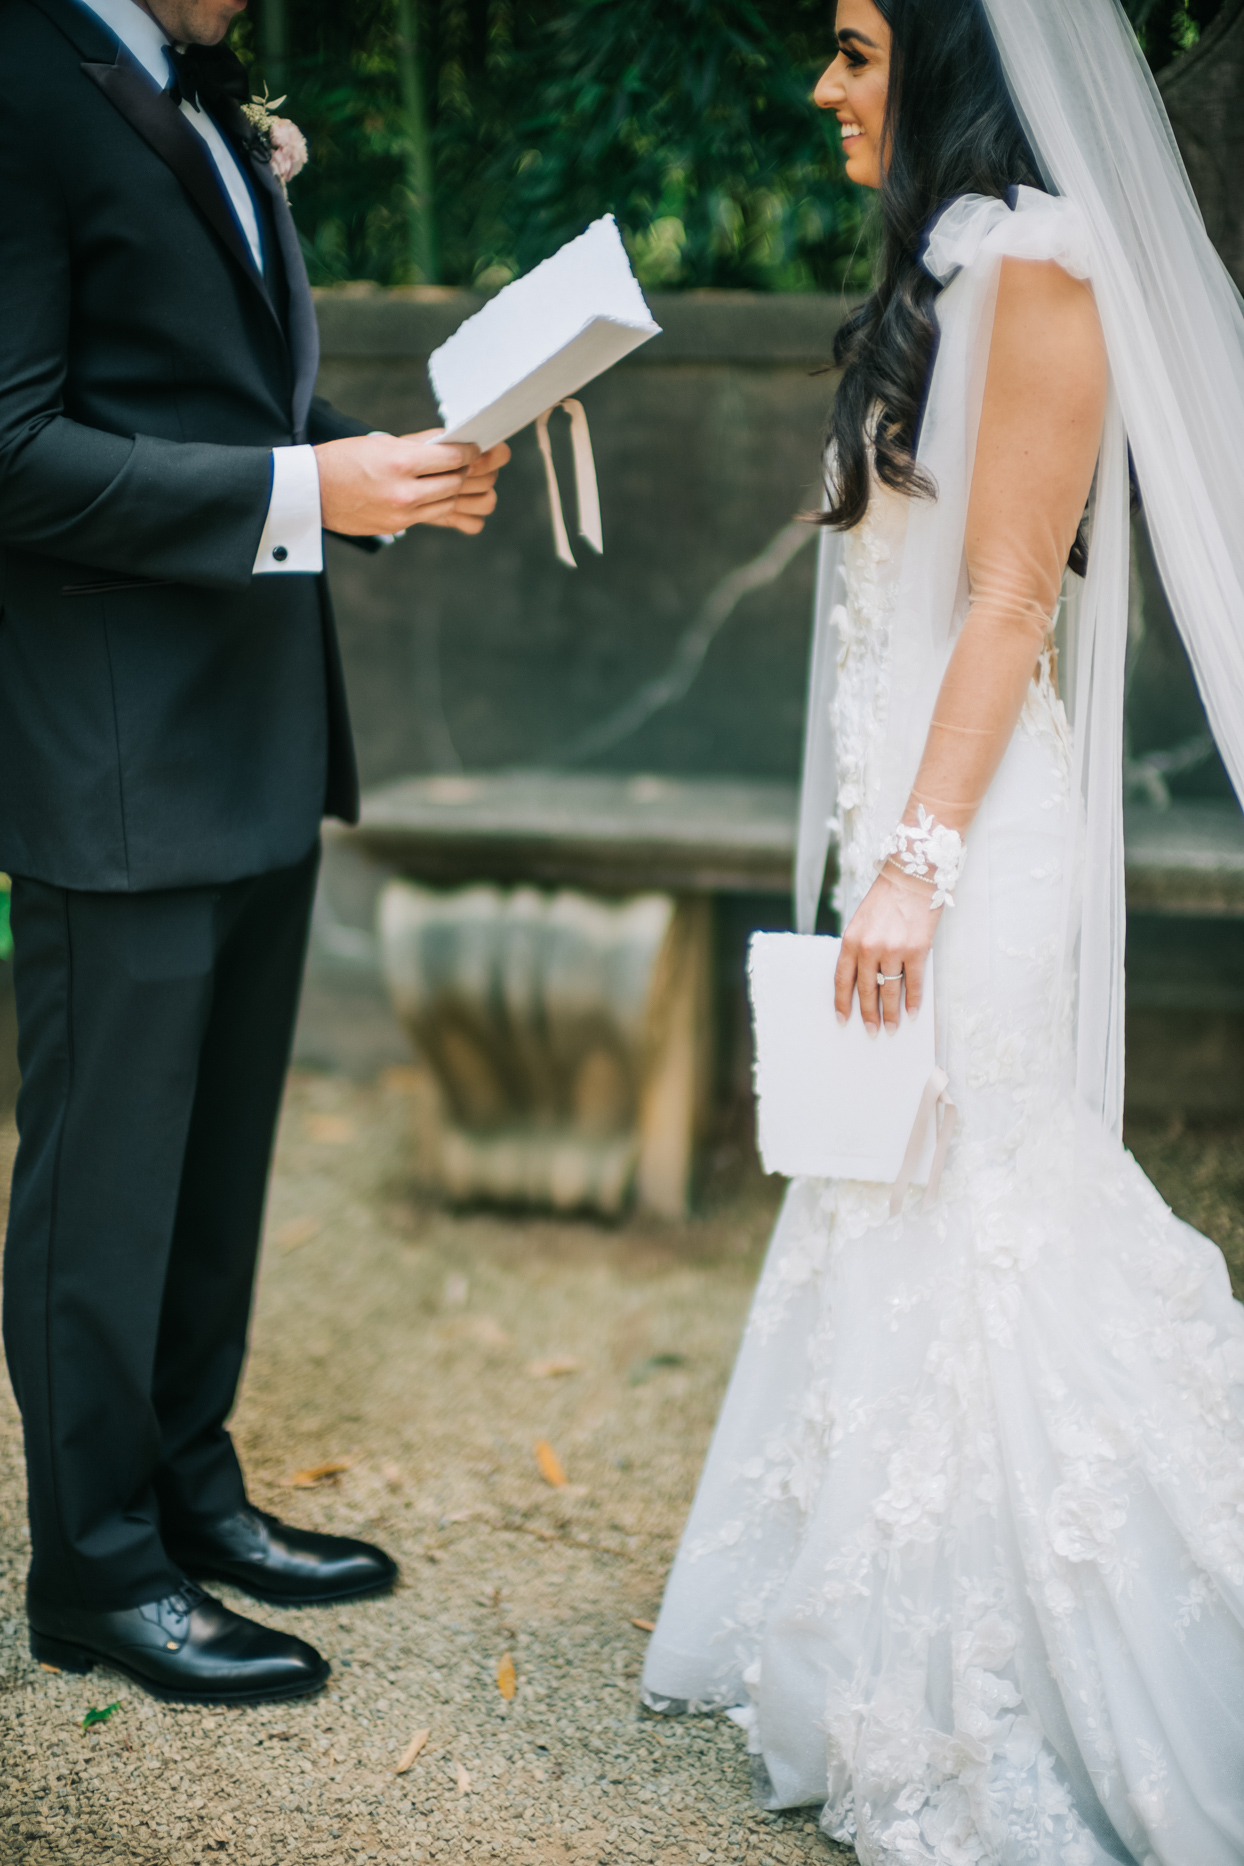 bride and groom privately exchanging vows